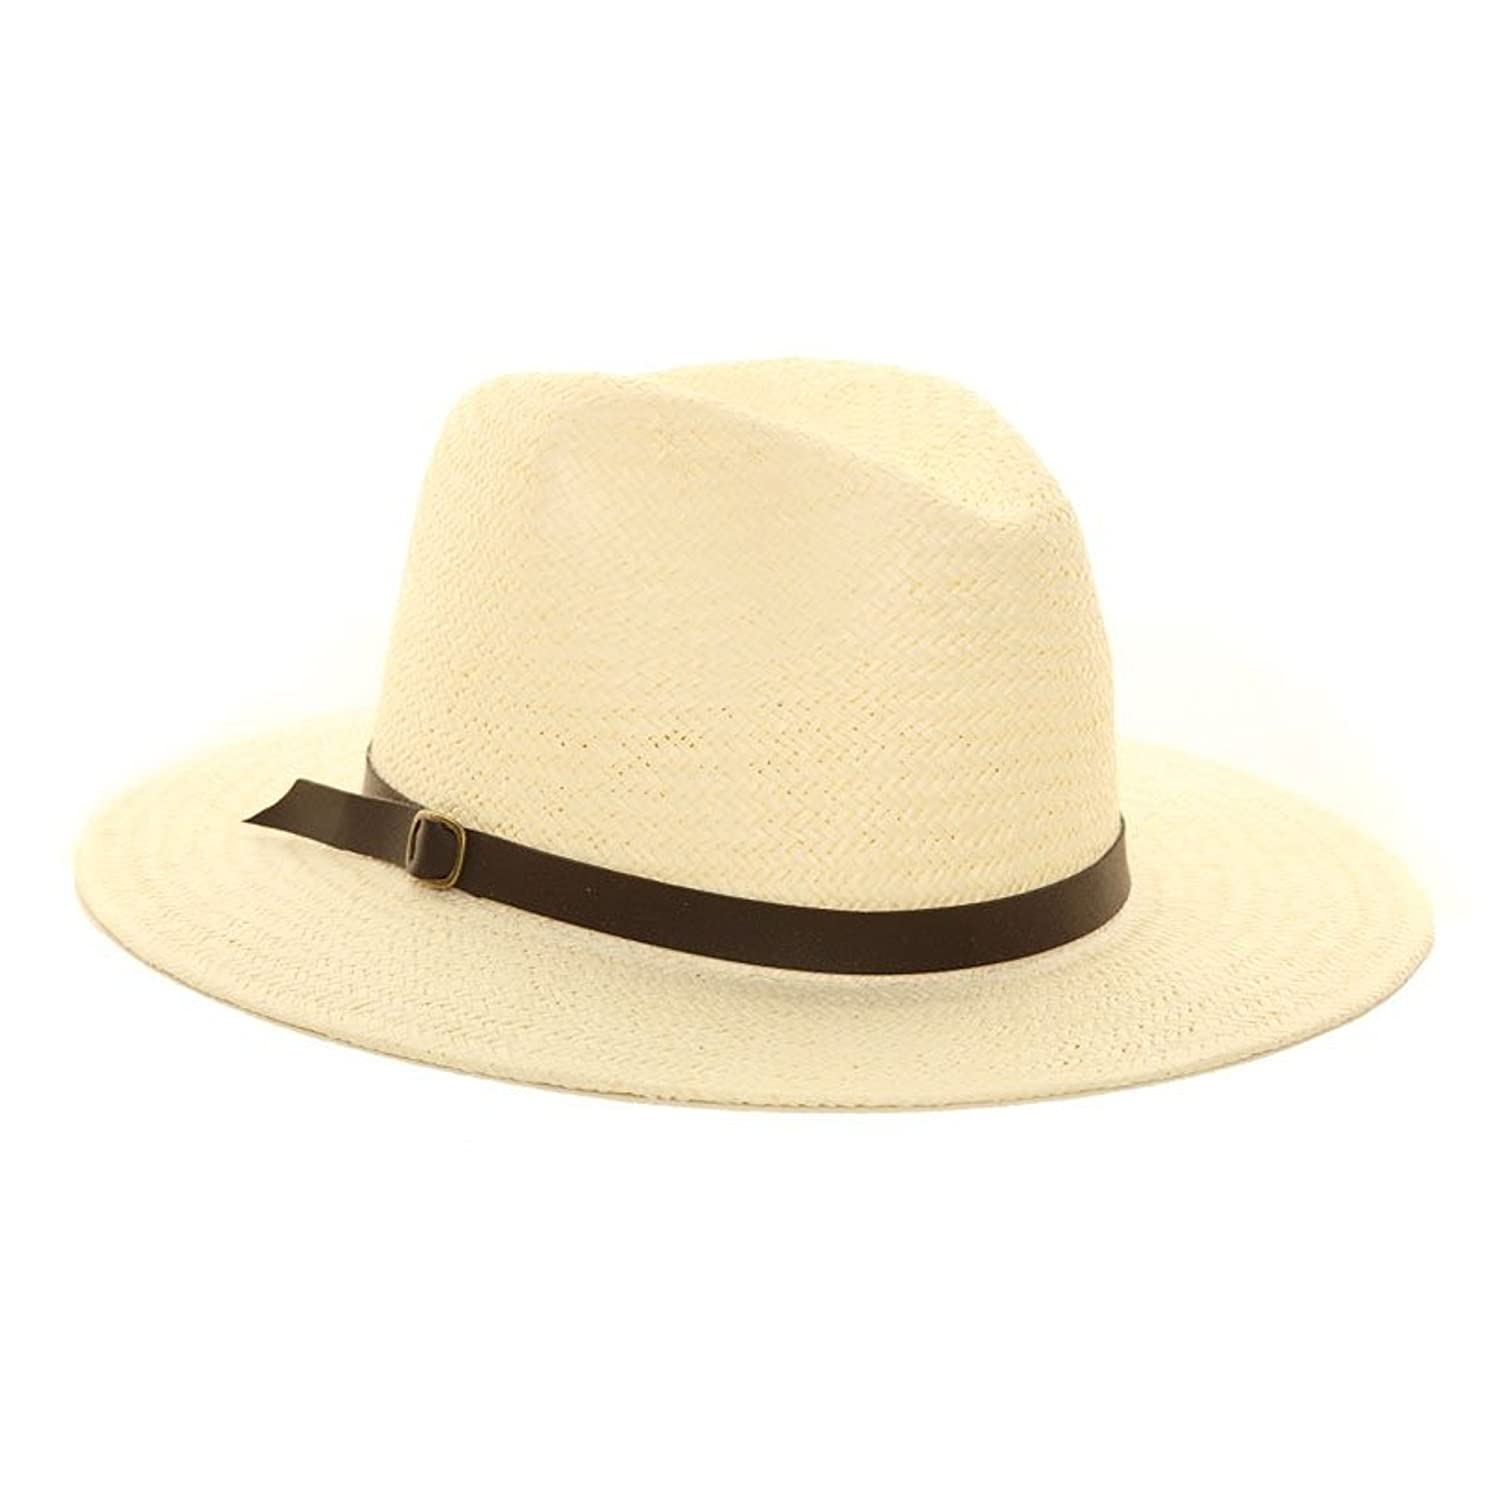 Unisex Straw Crushable Foldable Packable Summer Fedora,Panama Trilby Sun HAT with Belt Brown Band and Wider Brim